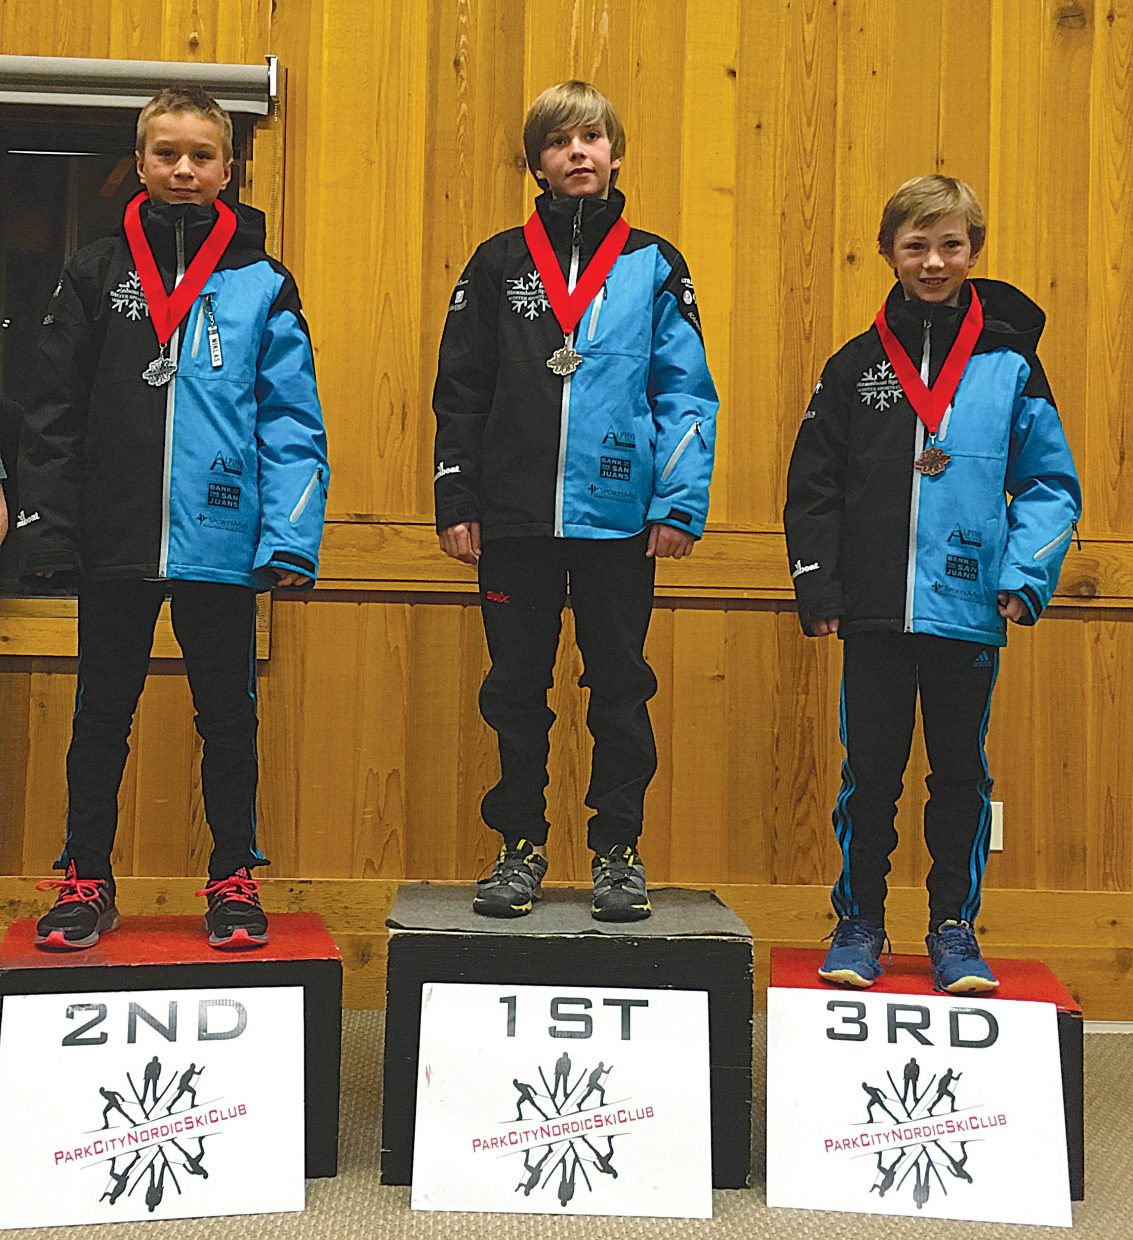 The Steamboat Springs U14 boys team swept the podium last weekend at the Western Regional Championships in Park City, Utah. Top finishers in the ski jumping event included Canden Wilkinson, middle, Niklas Malacinski, left, and Erik Belshaw.